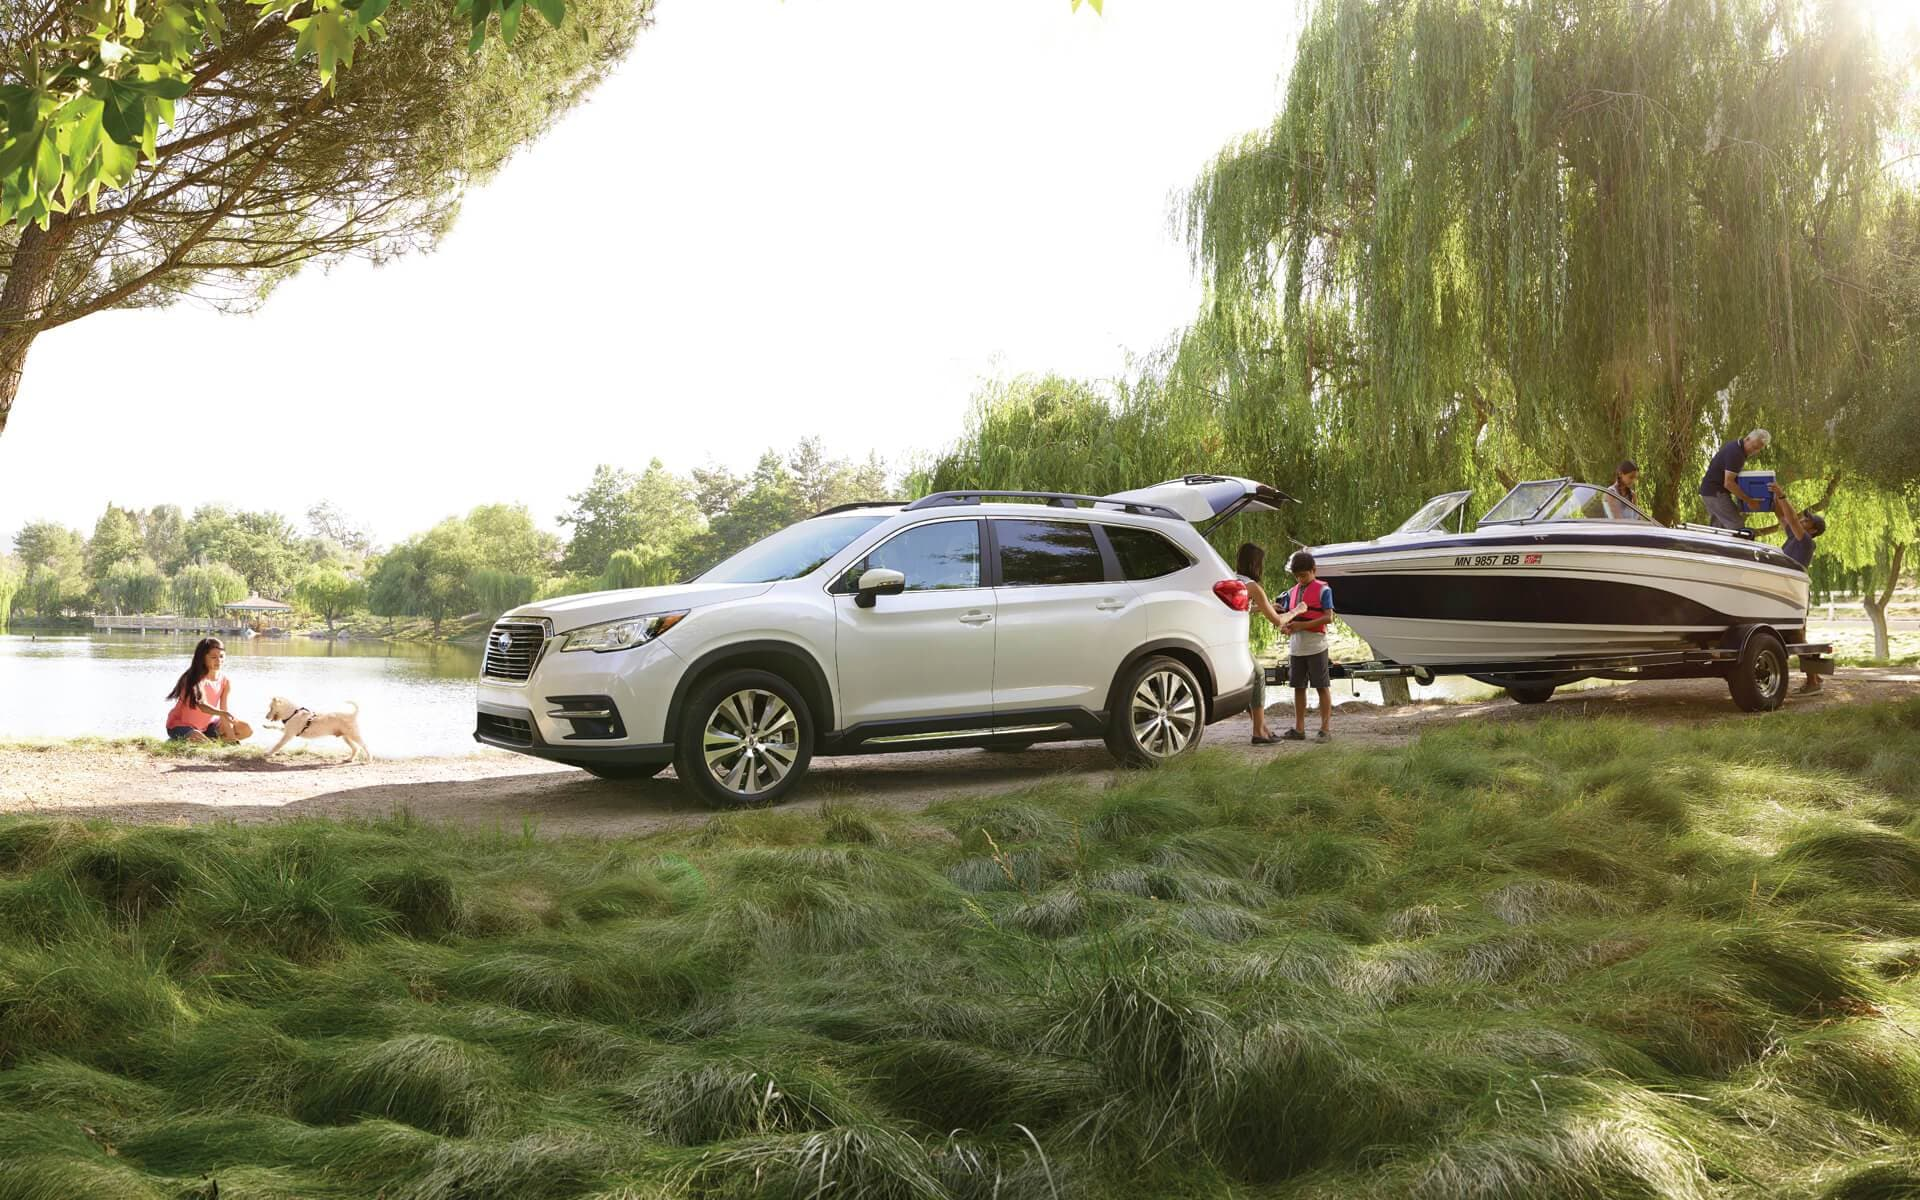 2019 Subaru Ascent Crossover Towing Boat